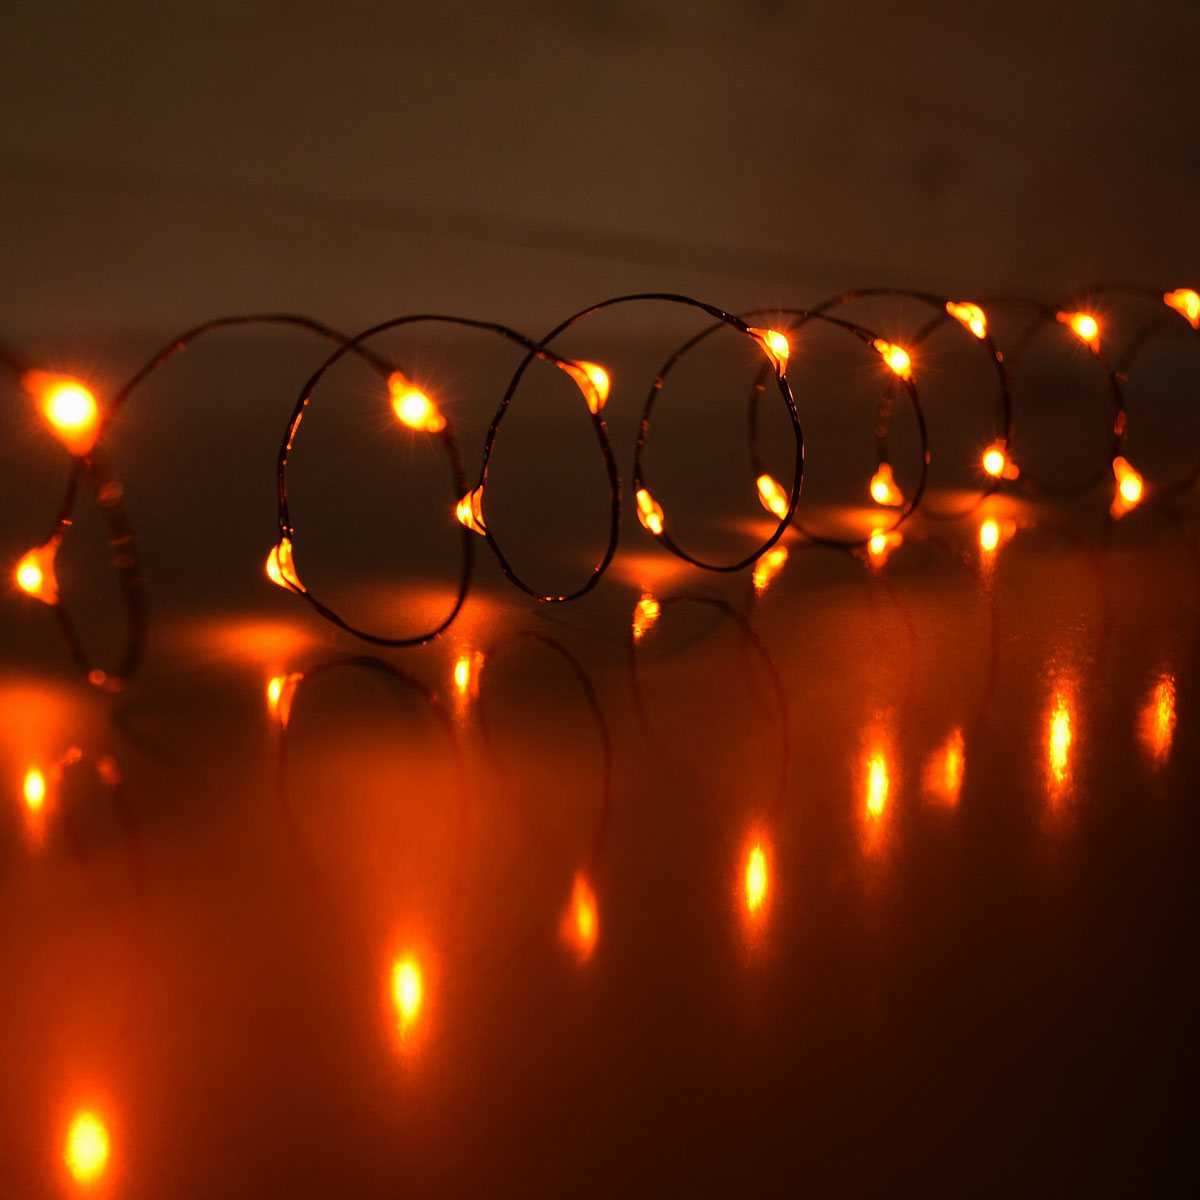 Led String Lights Orange : Orange LED Mini Battery Operated String Lights